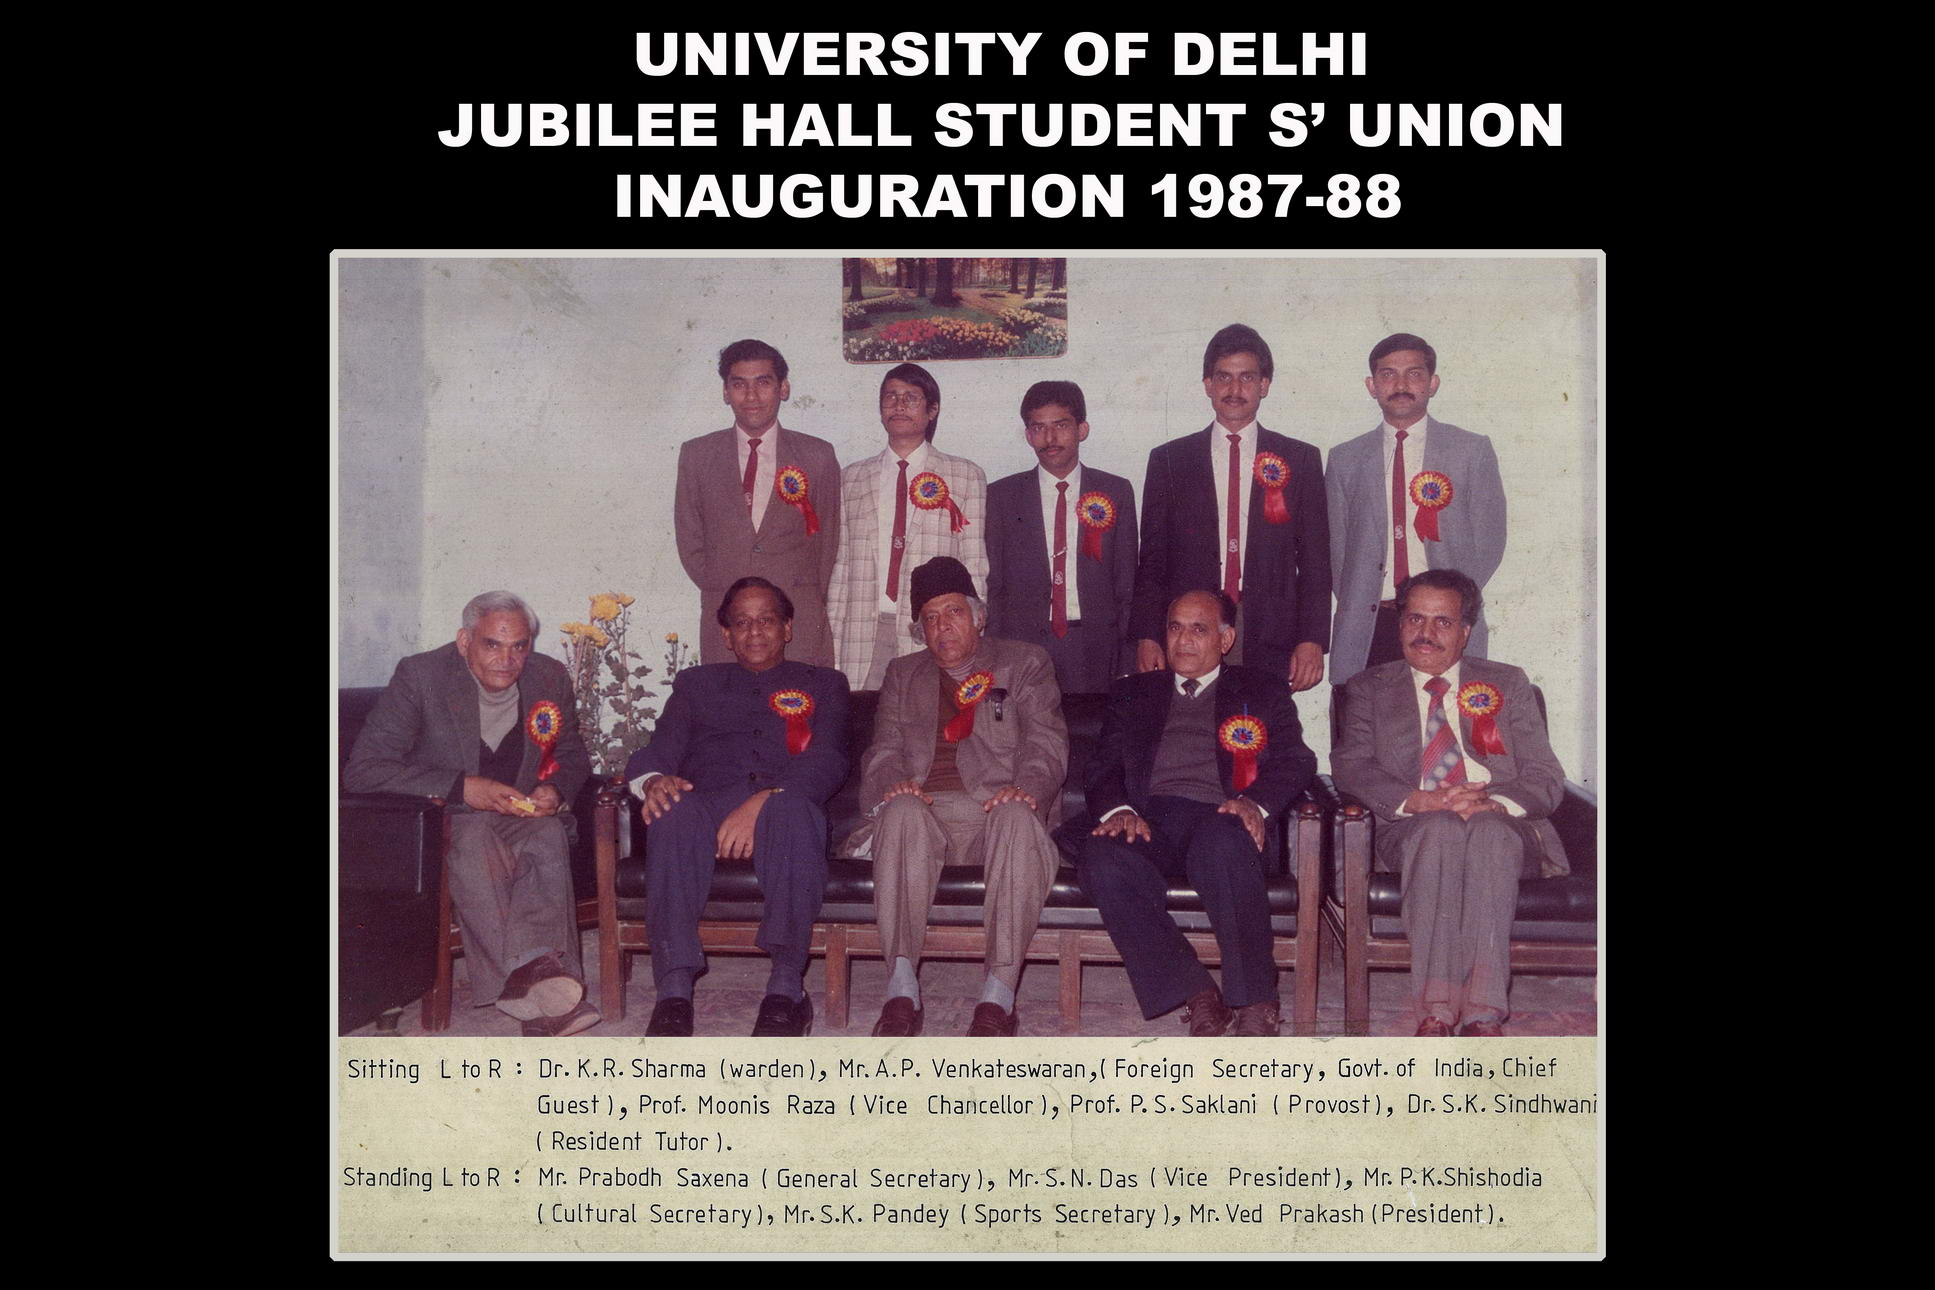 images/gallery/museum//1987-88 INAUGURAL FUNCTION_resize.jpg